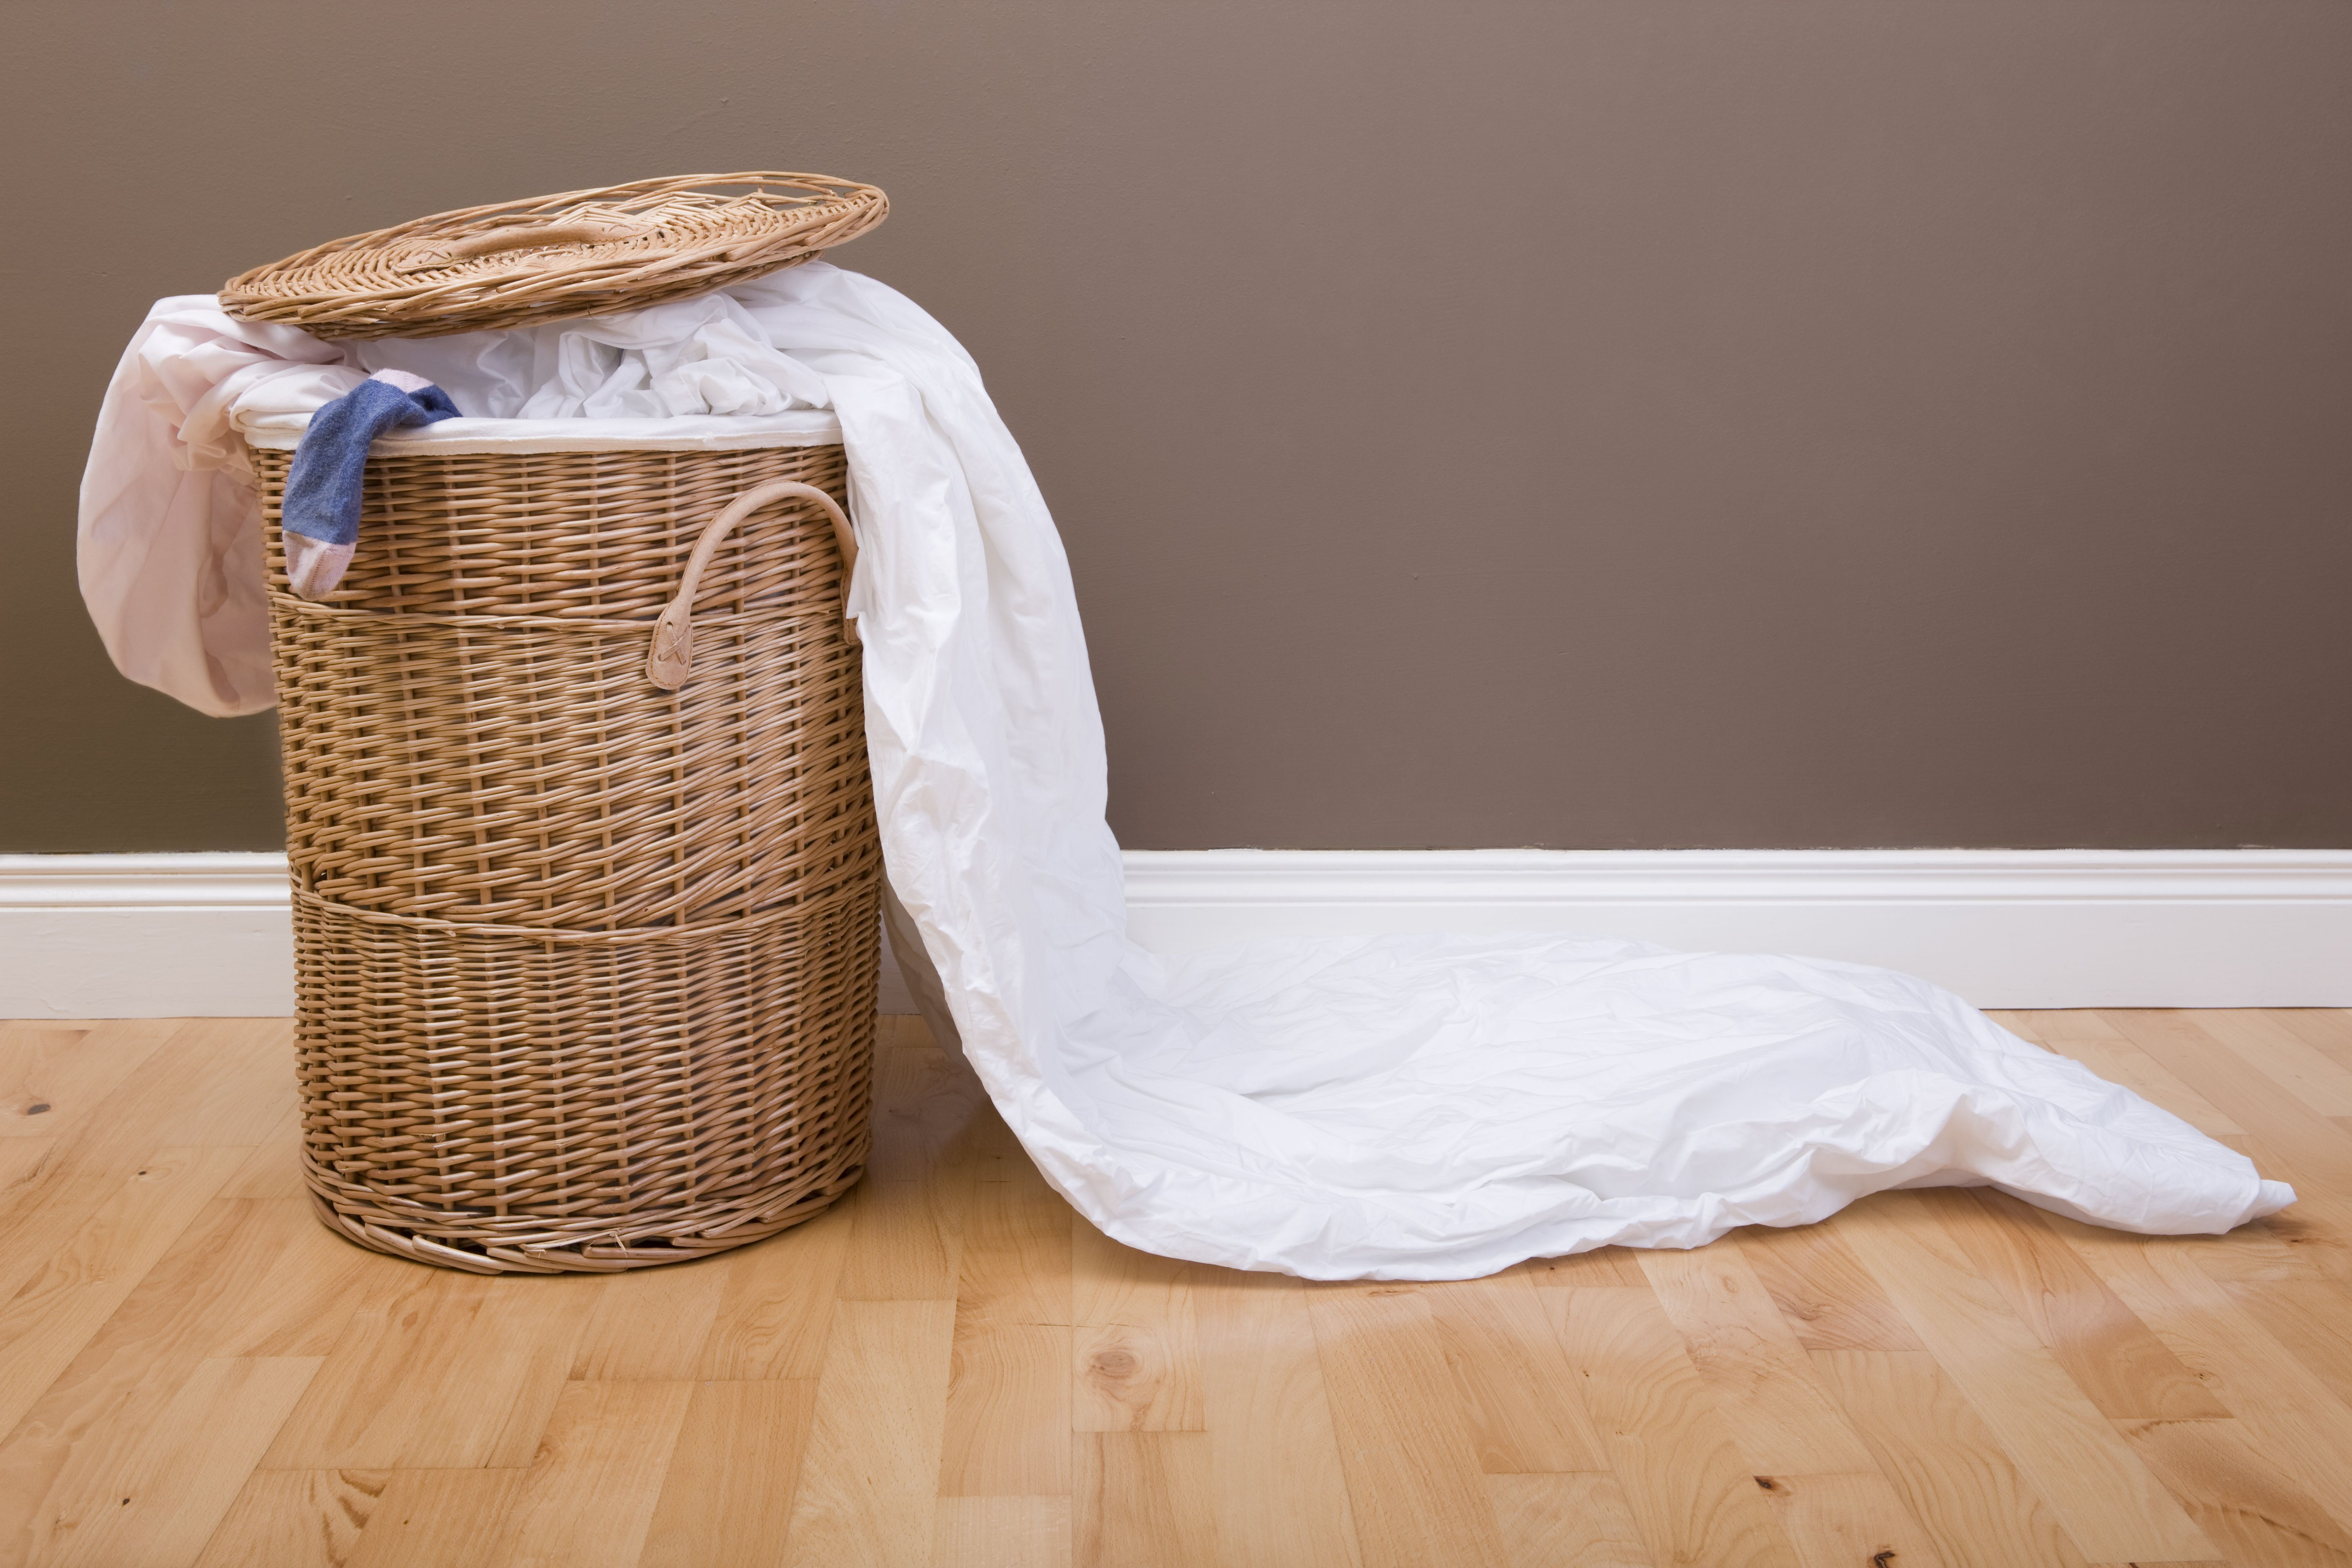 Reduce dust mites by doing laundry correctly Can head lice be spread in a swimming pool